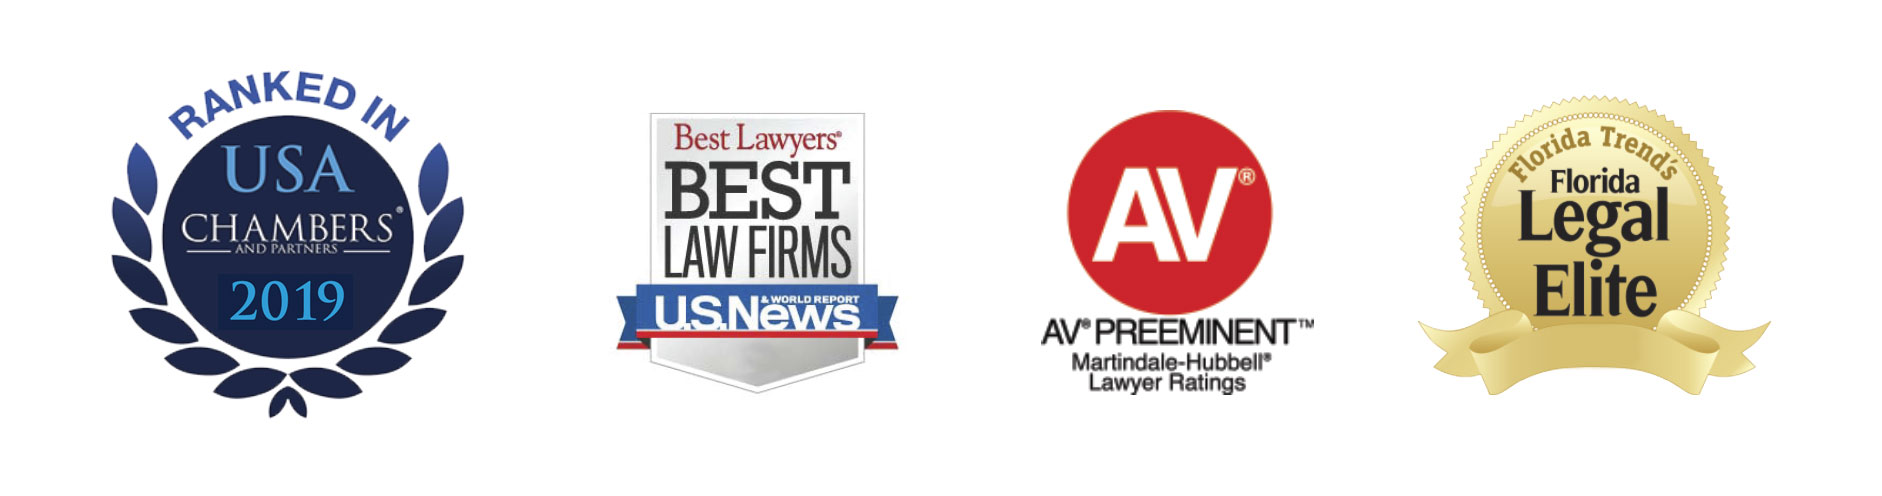 MMandH Chambers ranked and best law firm